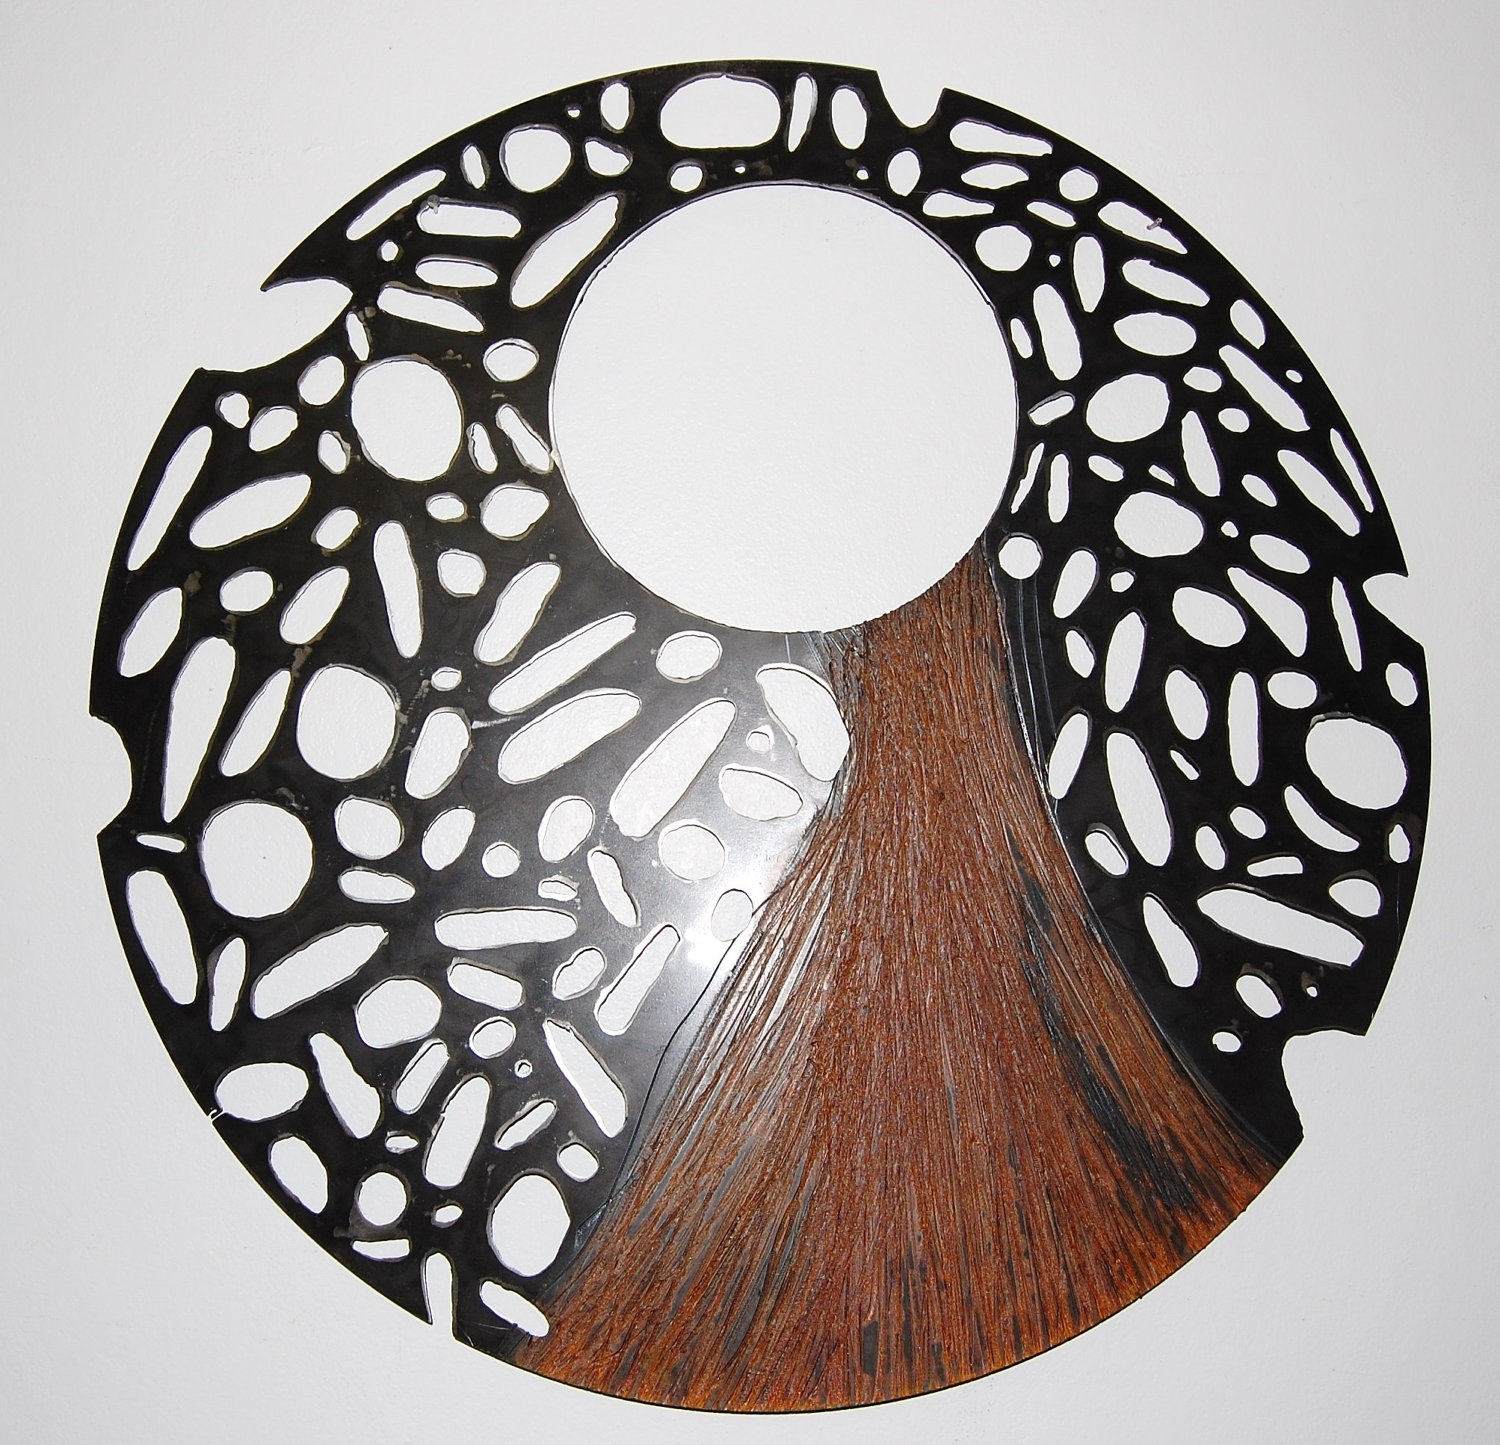 Large Steel Sculpture,recycled Metal Wall Art, Round Perforated Inside Newest Abstract Garden Wall Art (View 11 of 20)